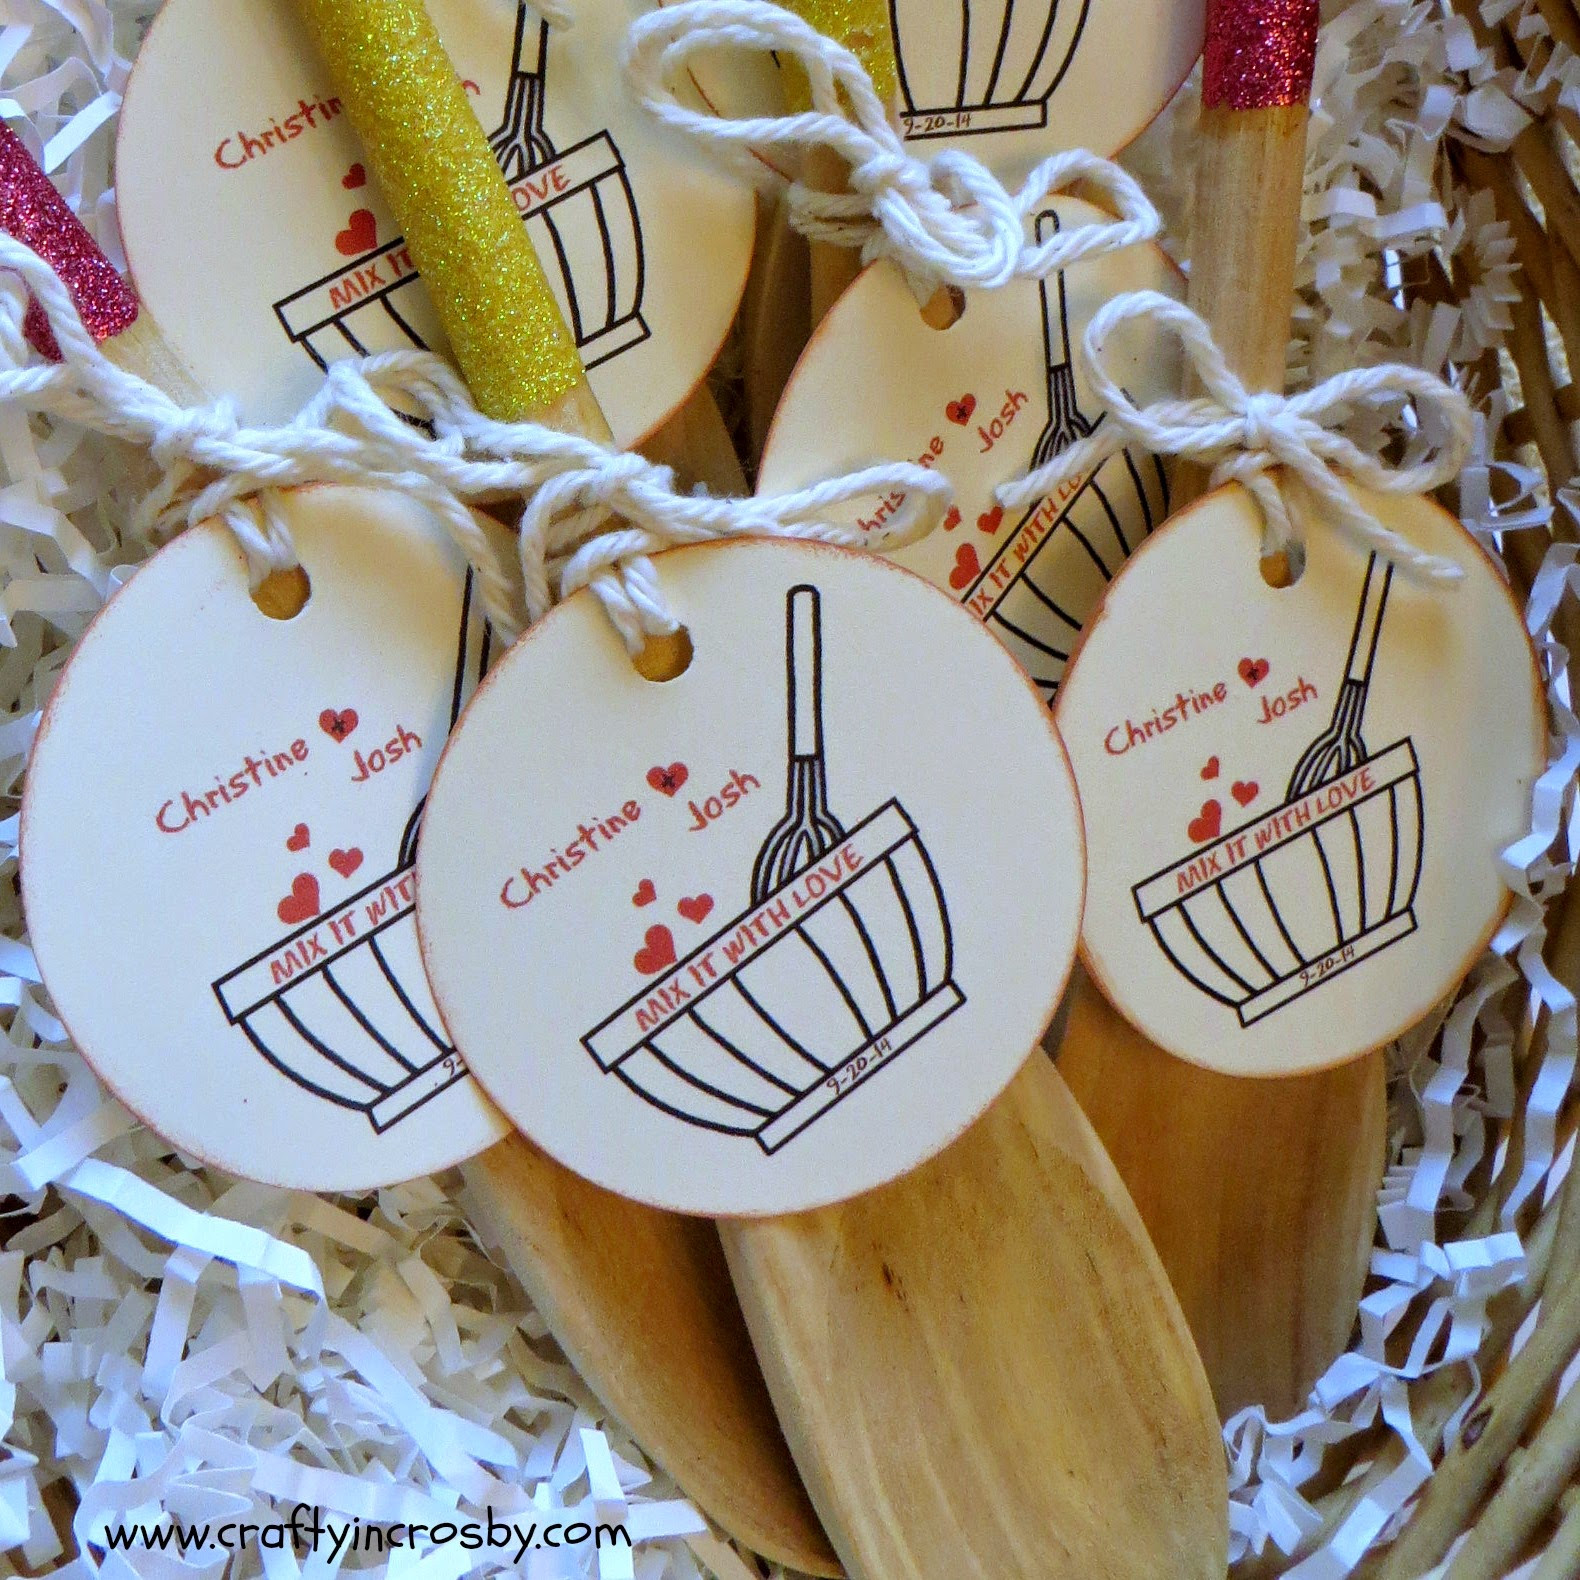 Best ideas about Bridal Shower Favors DIY . Save or Pin Crafty in Crosby Bridal Shower Favors Mix it With Love Now.